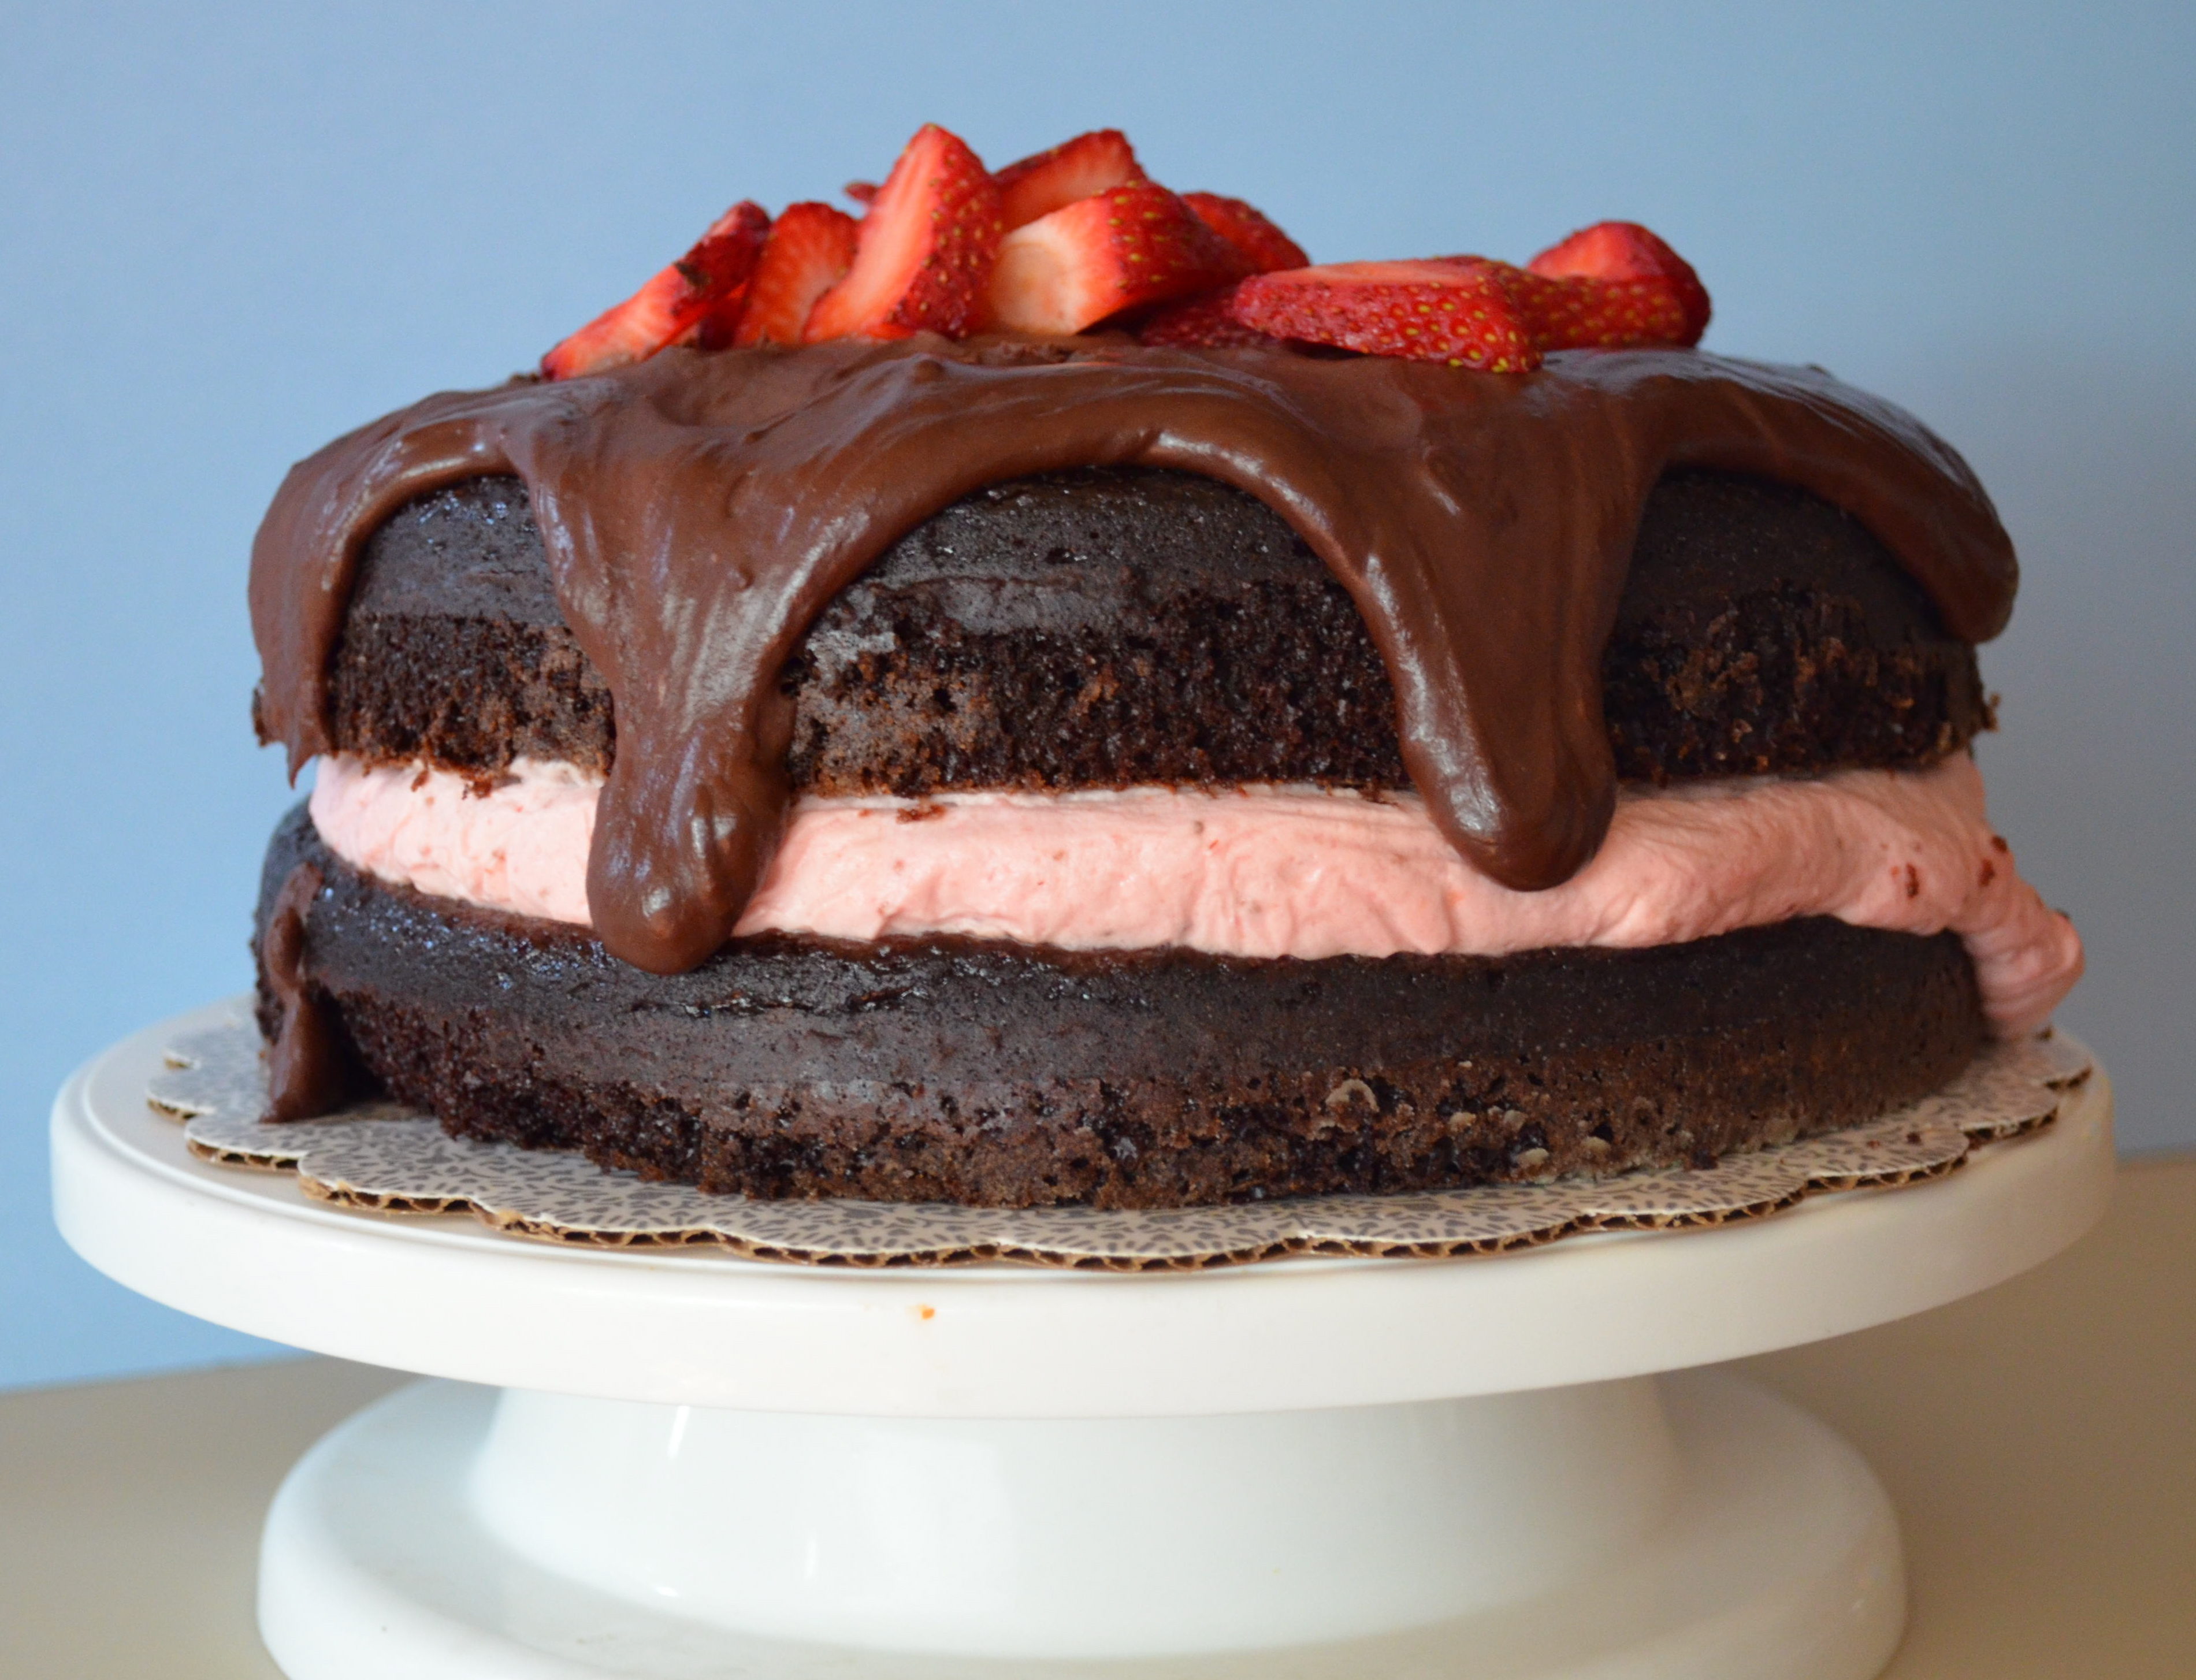 Chocolate Cake With Strawberry Cheesecake Mousse Filling